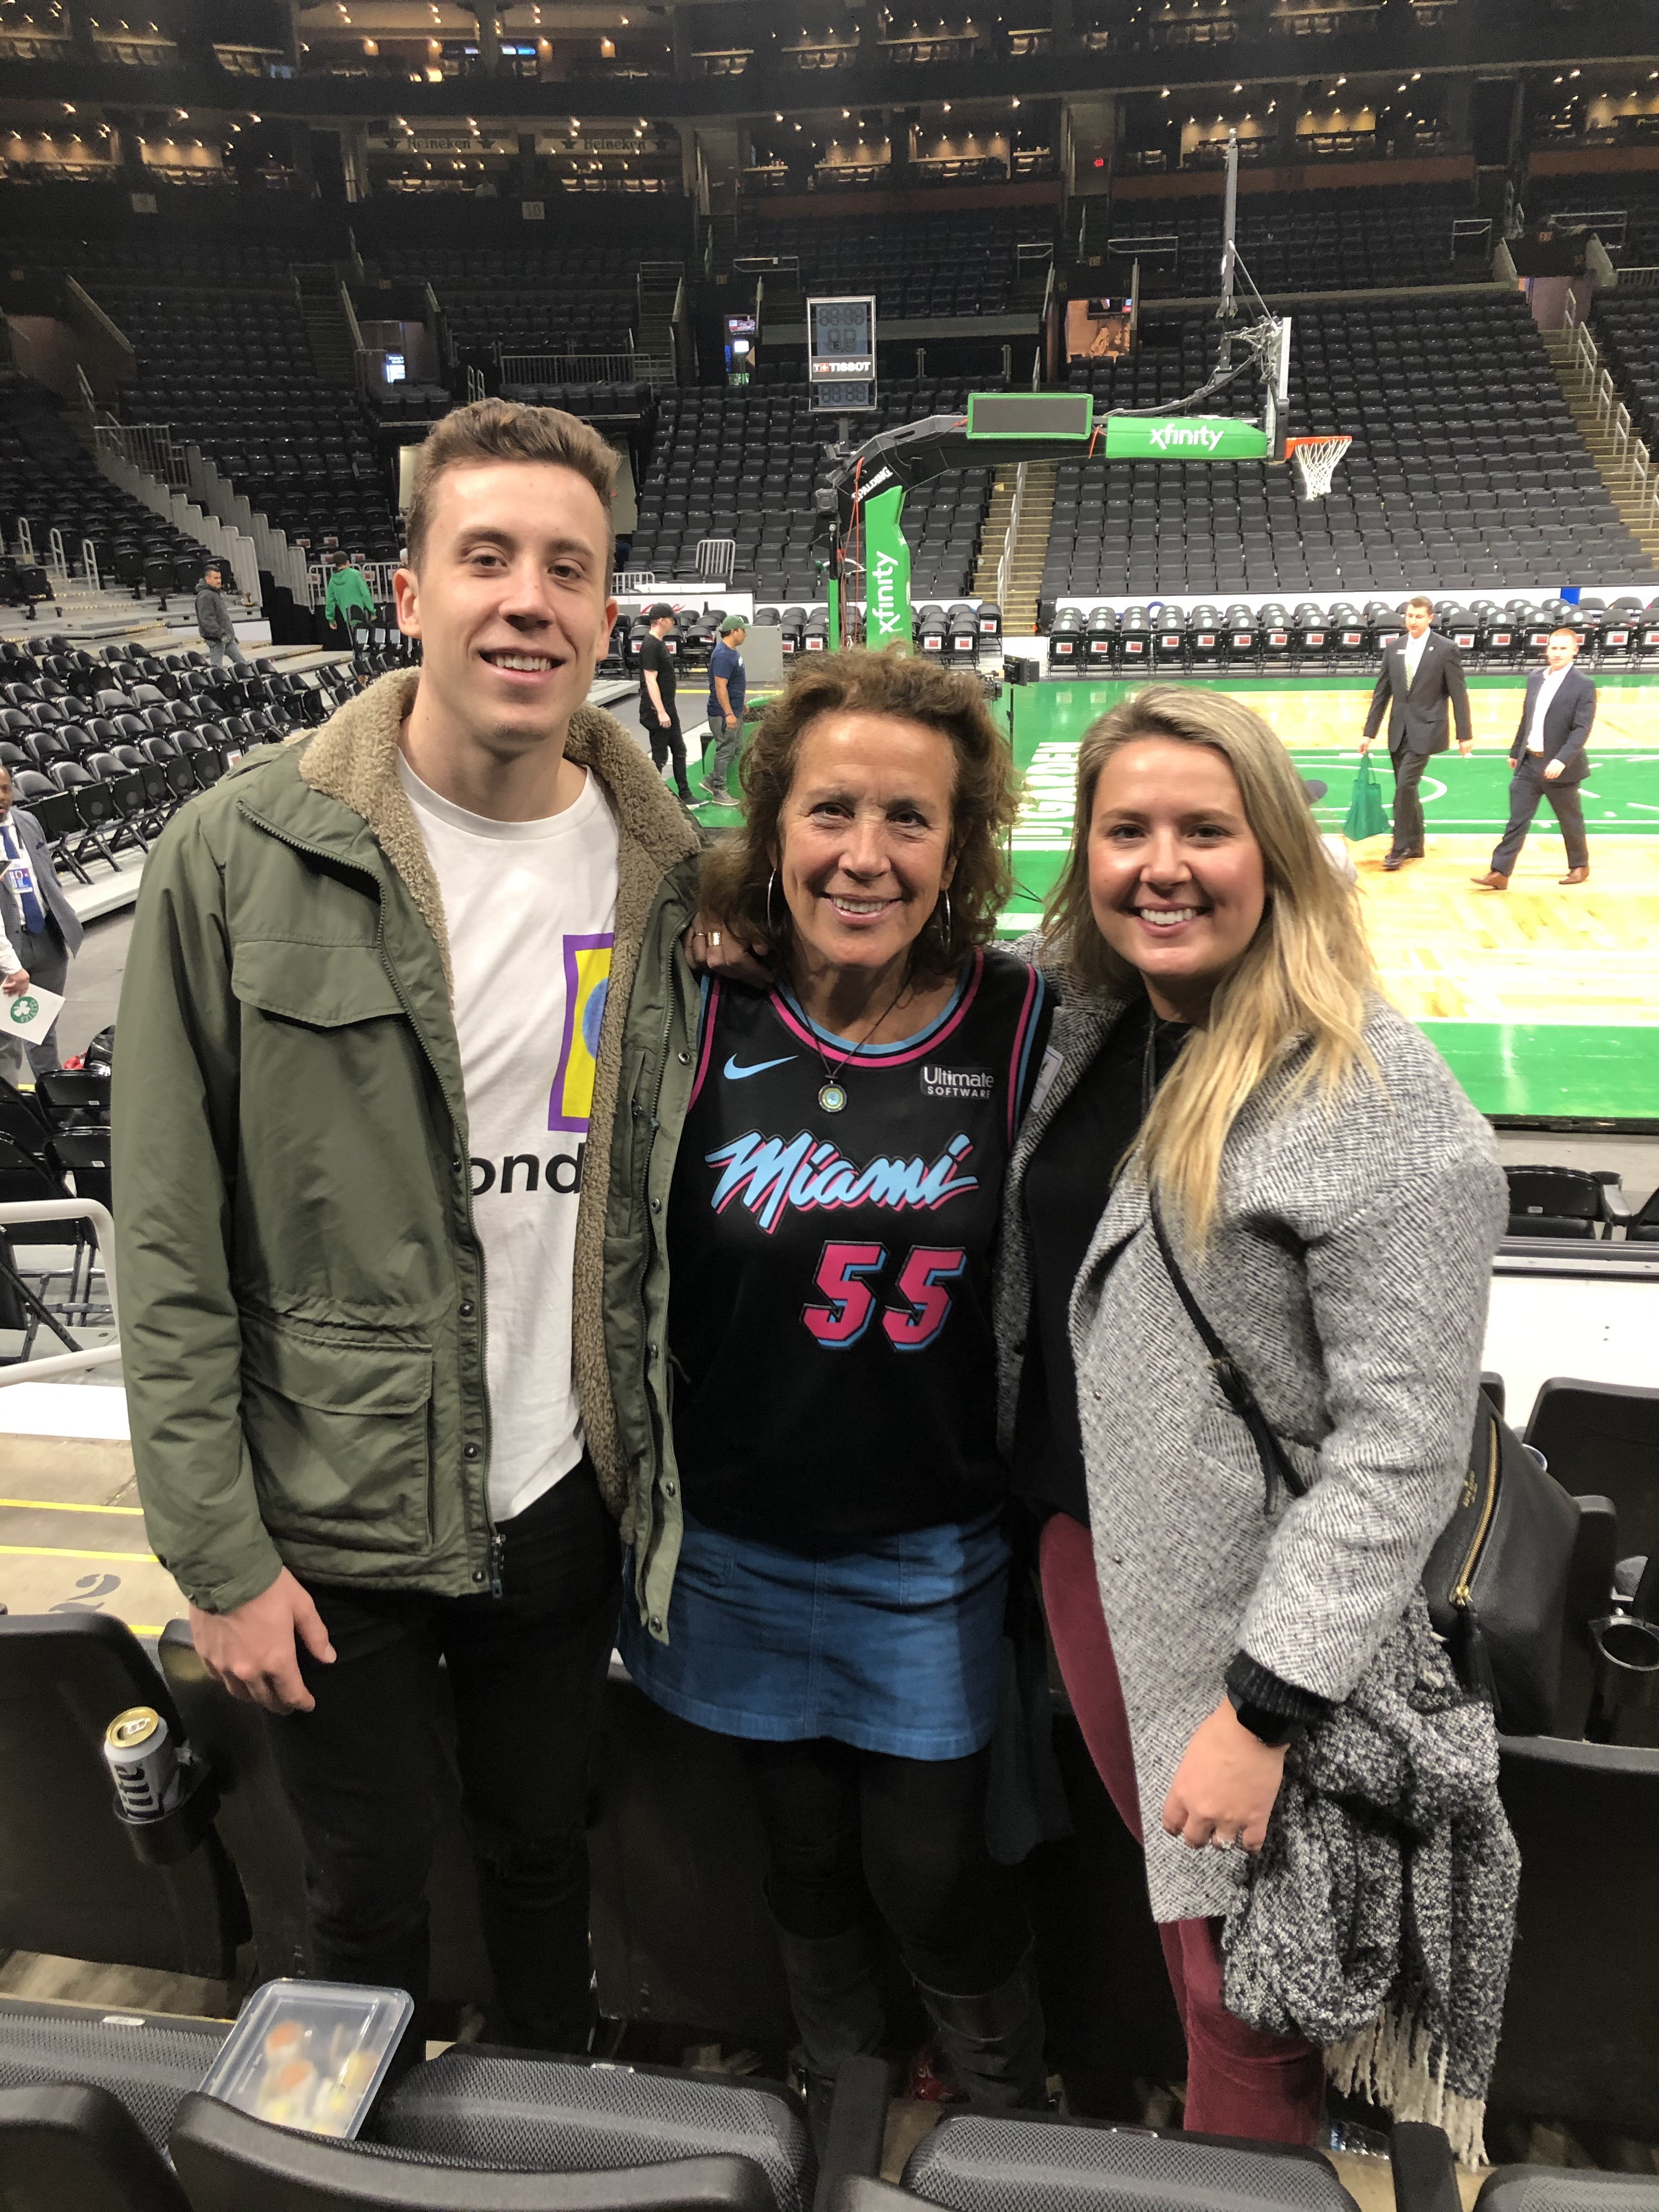 bostonglobe.com - Adam Himmelsbach - Duncan Robinson took an unlikely path from small-town New Hampshire to NBA starter